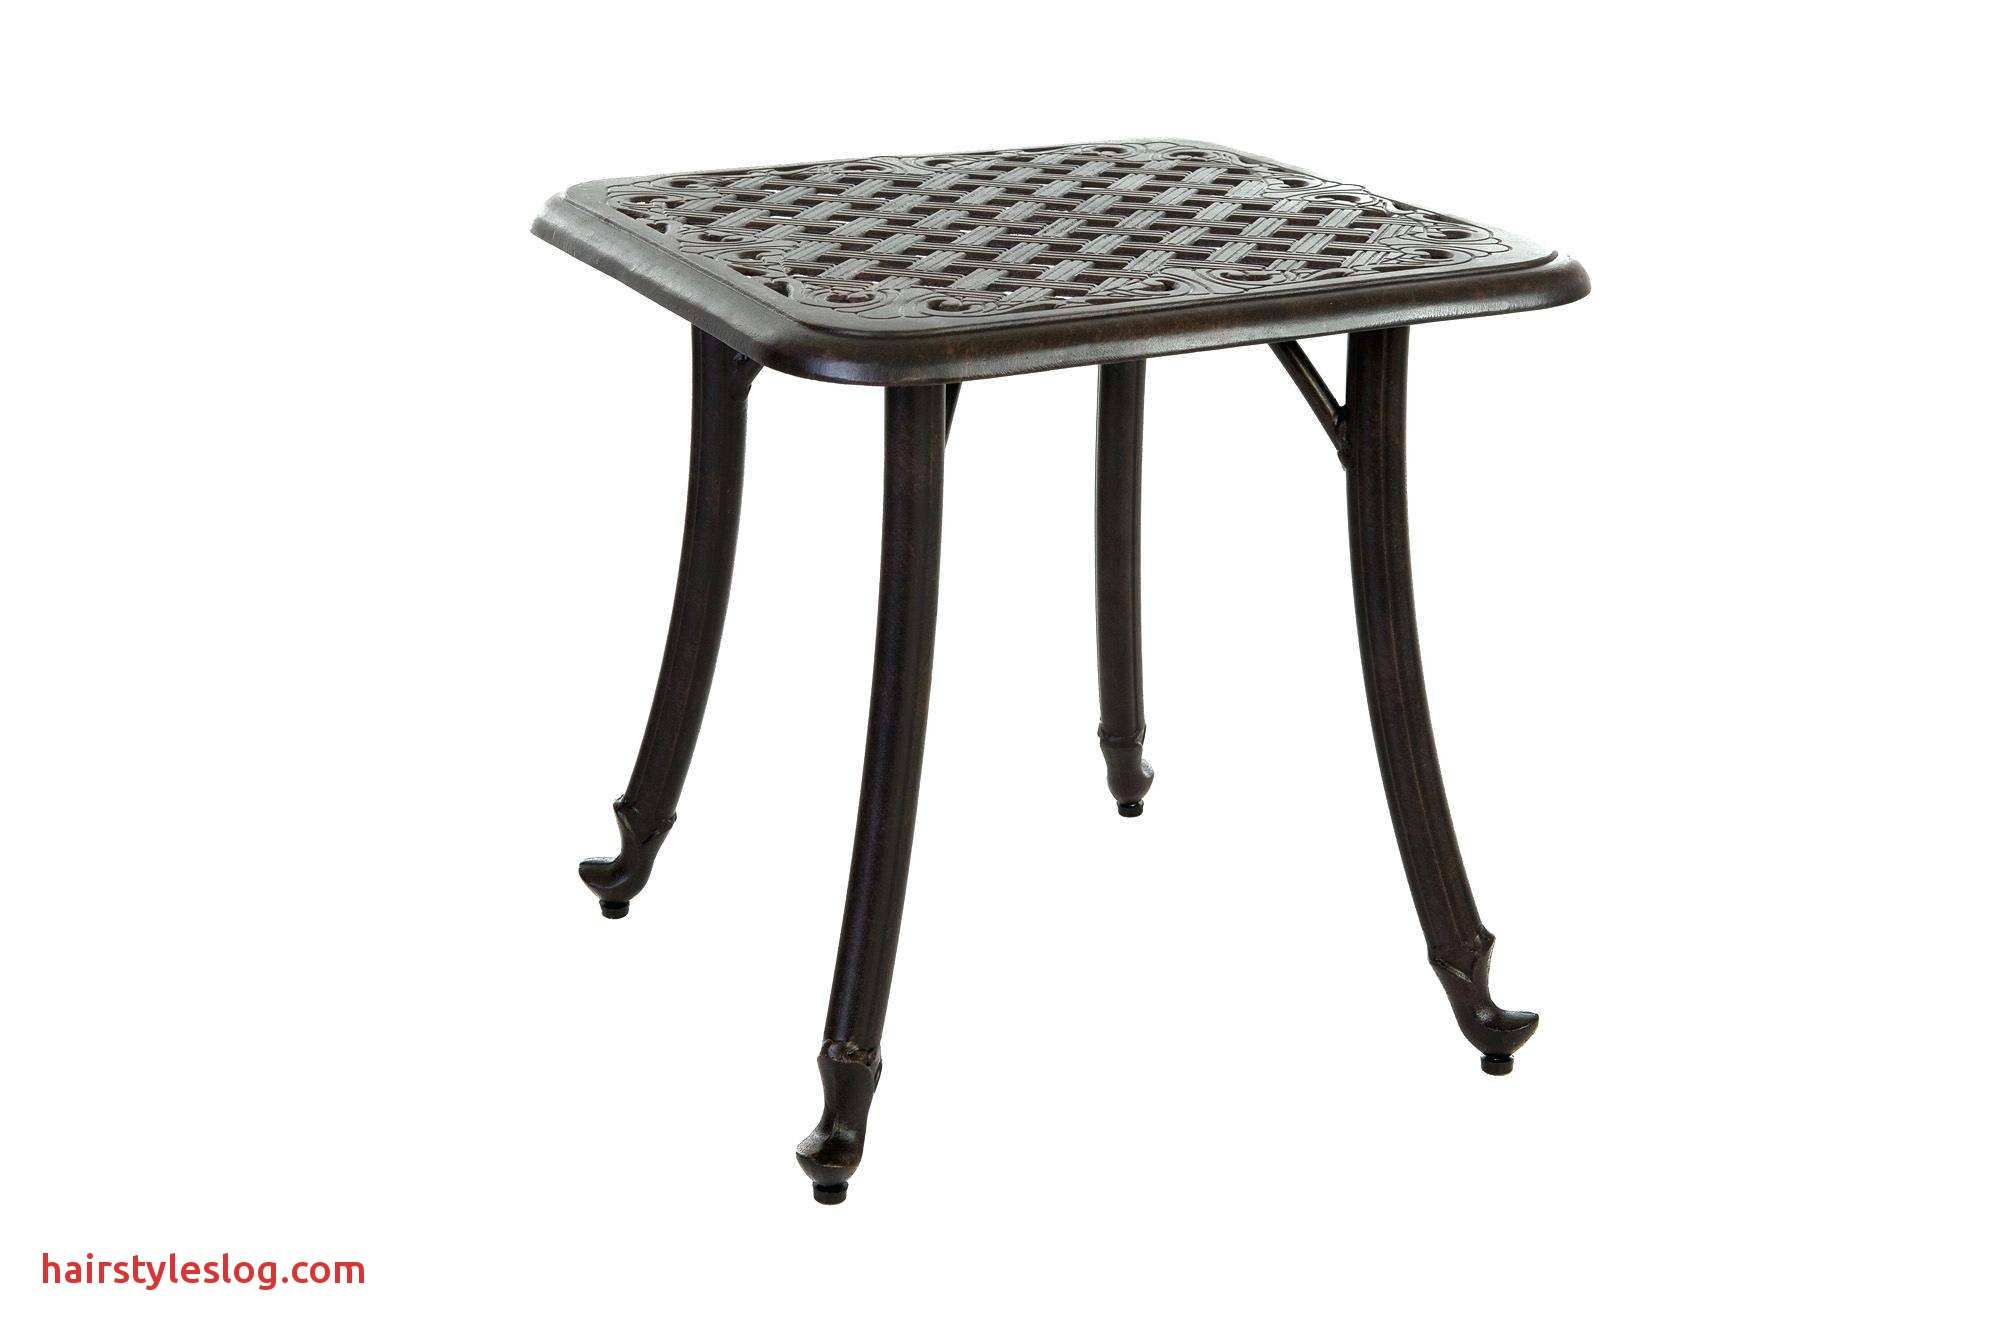 top design white pedestal kitchen table decor awesome round metal accent black carved console drawer pulls and knobs battery operated lights lamps acrylic sofa hammered side